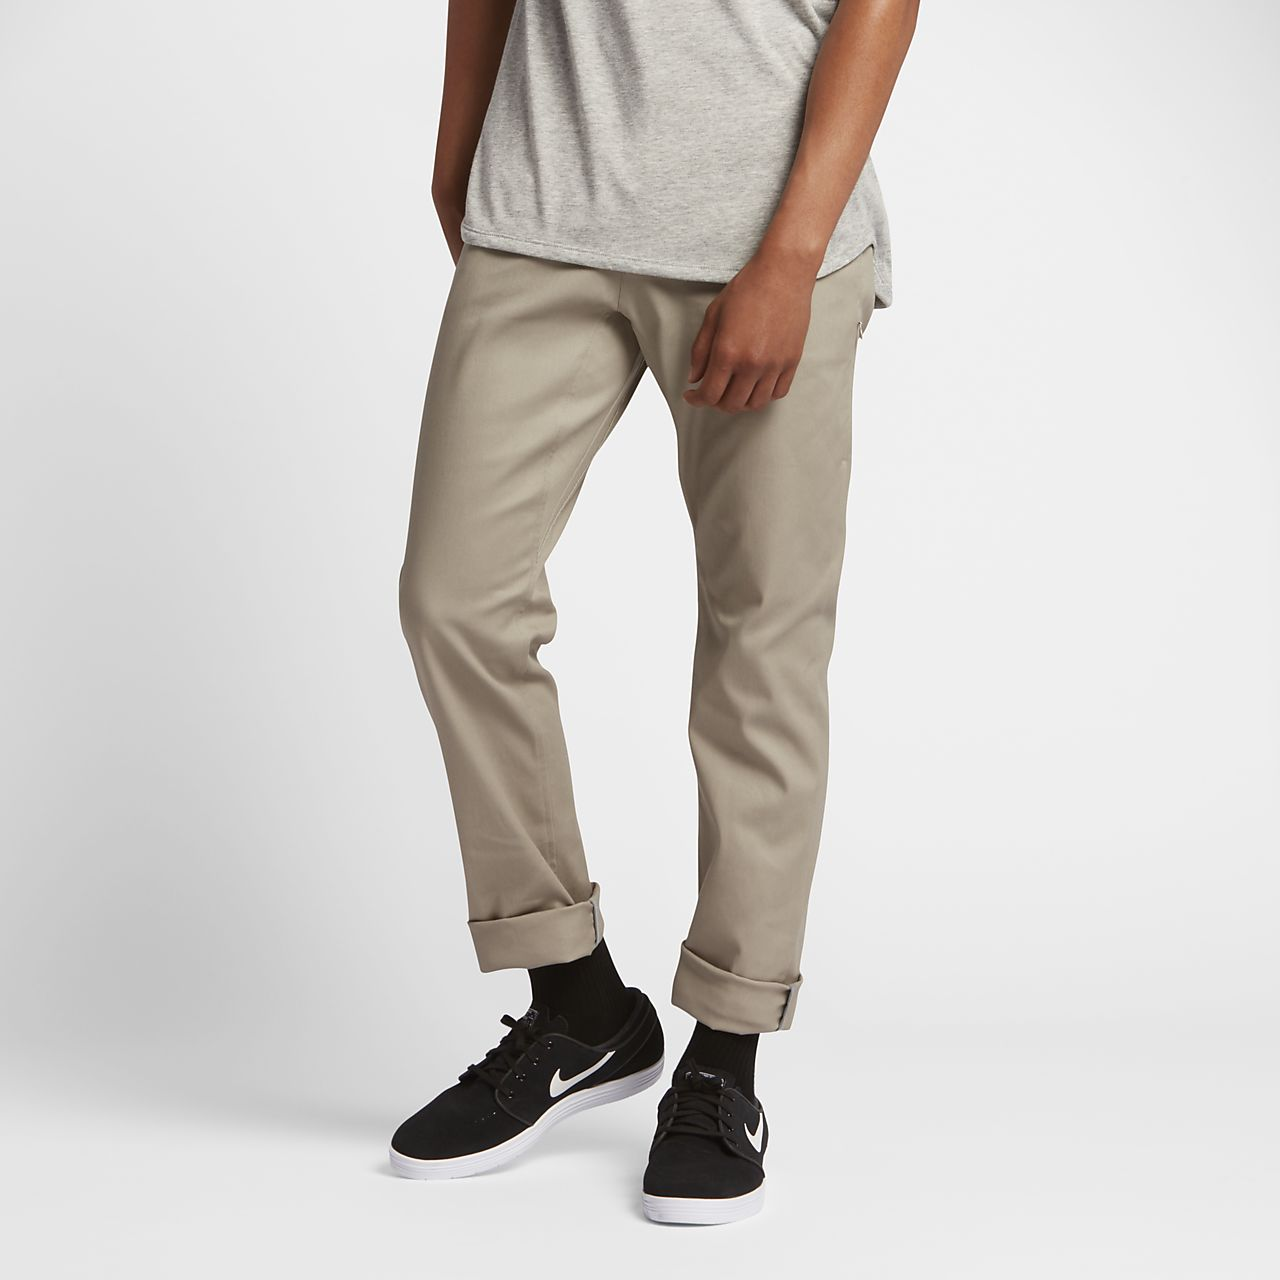 ee49070ad31eb Nike SB FTM Chino Men's Trousers. Nike.com NZ